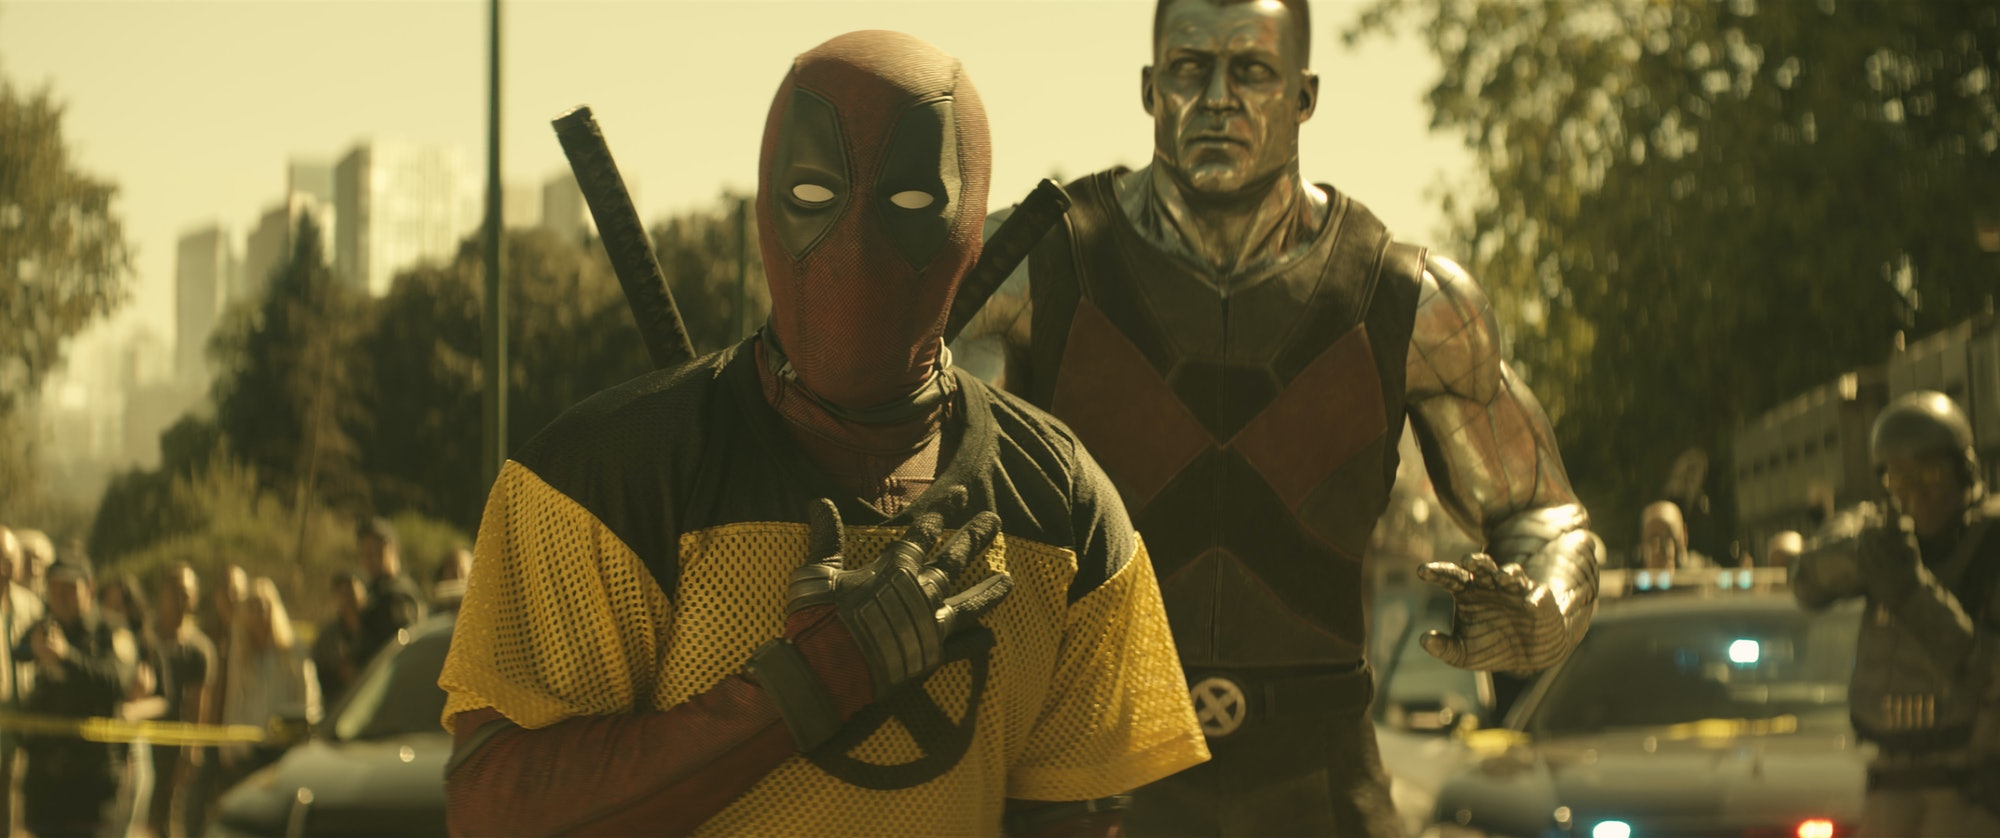 Deadpool 2 X-Men Cameo